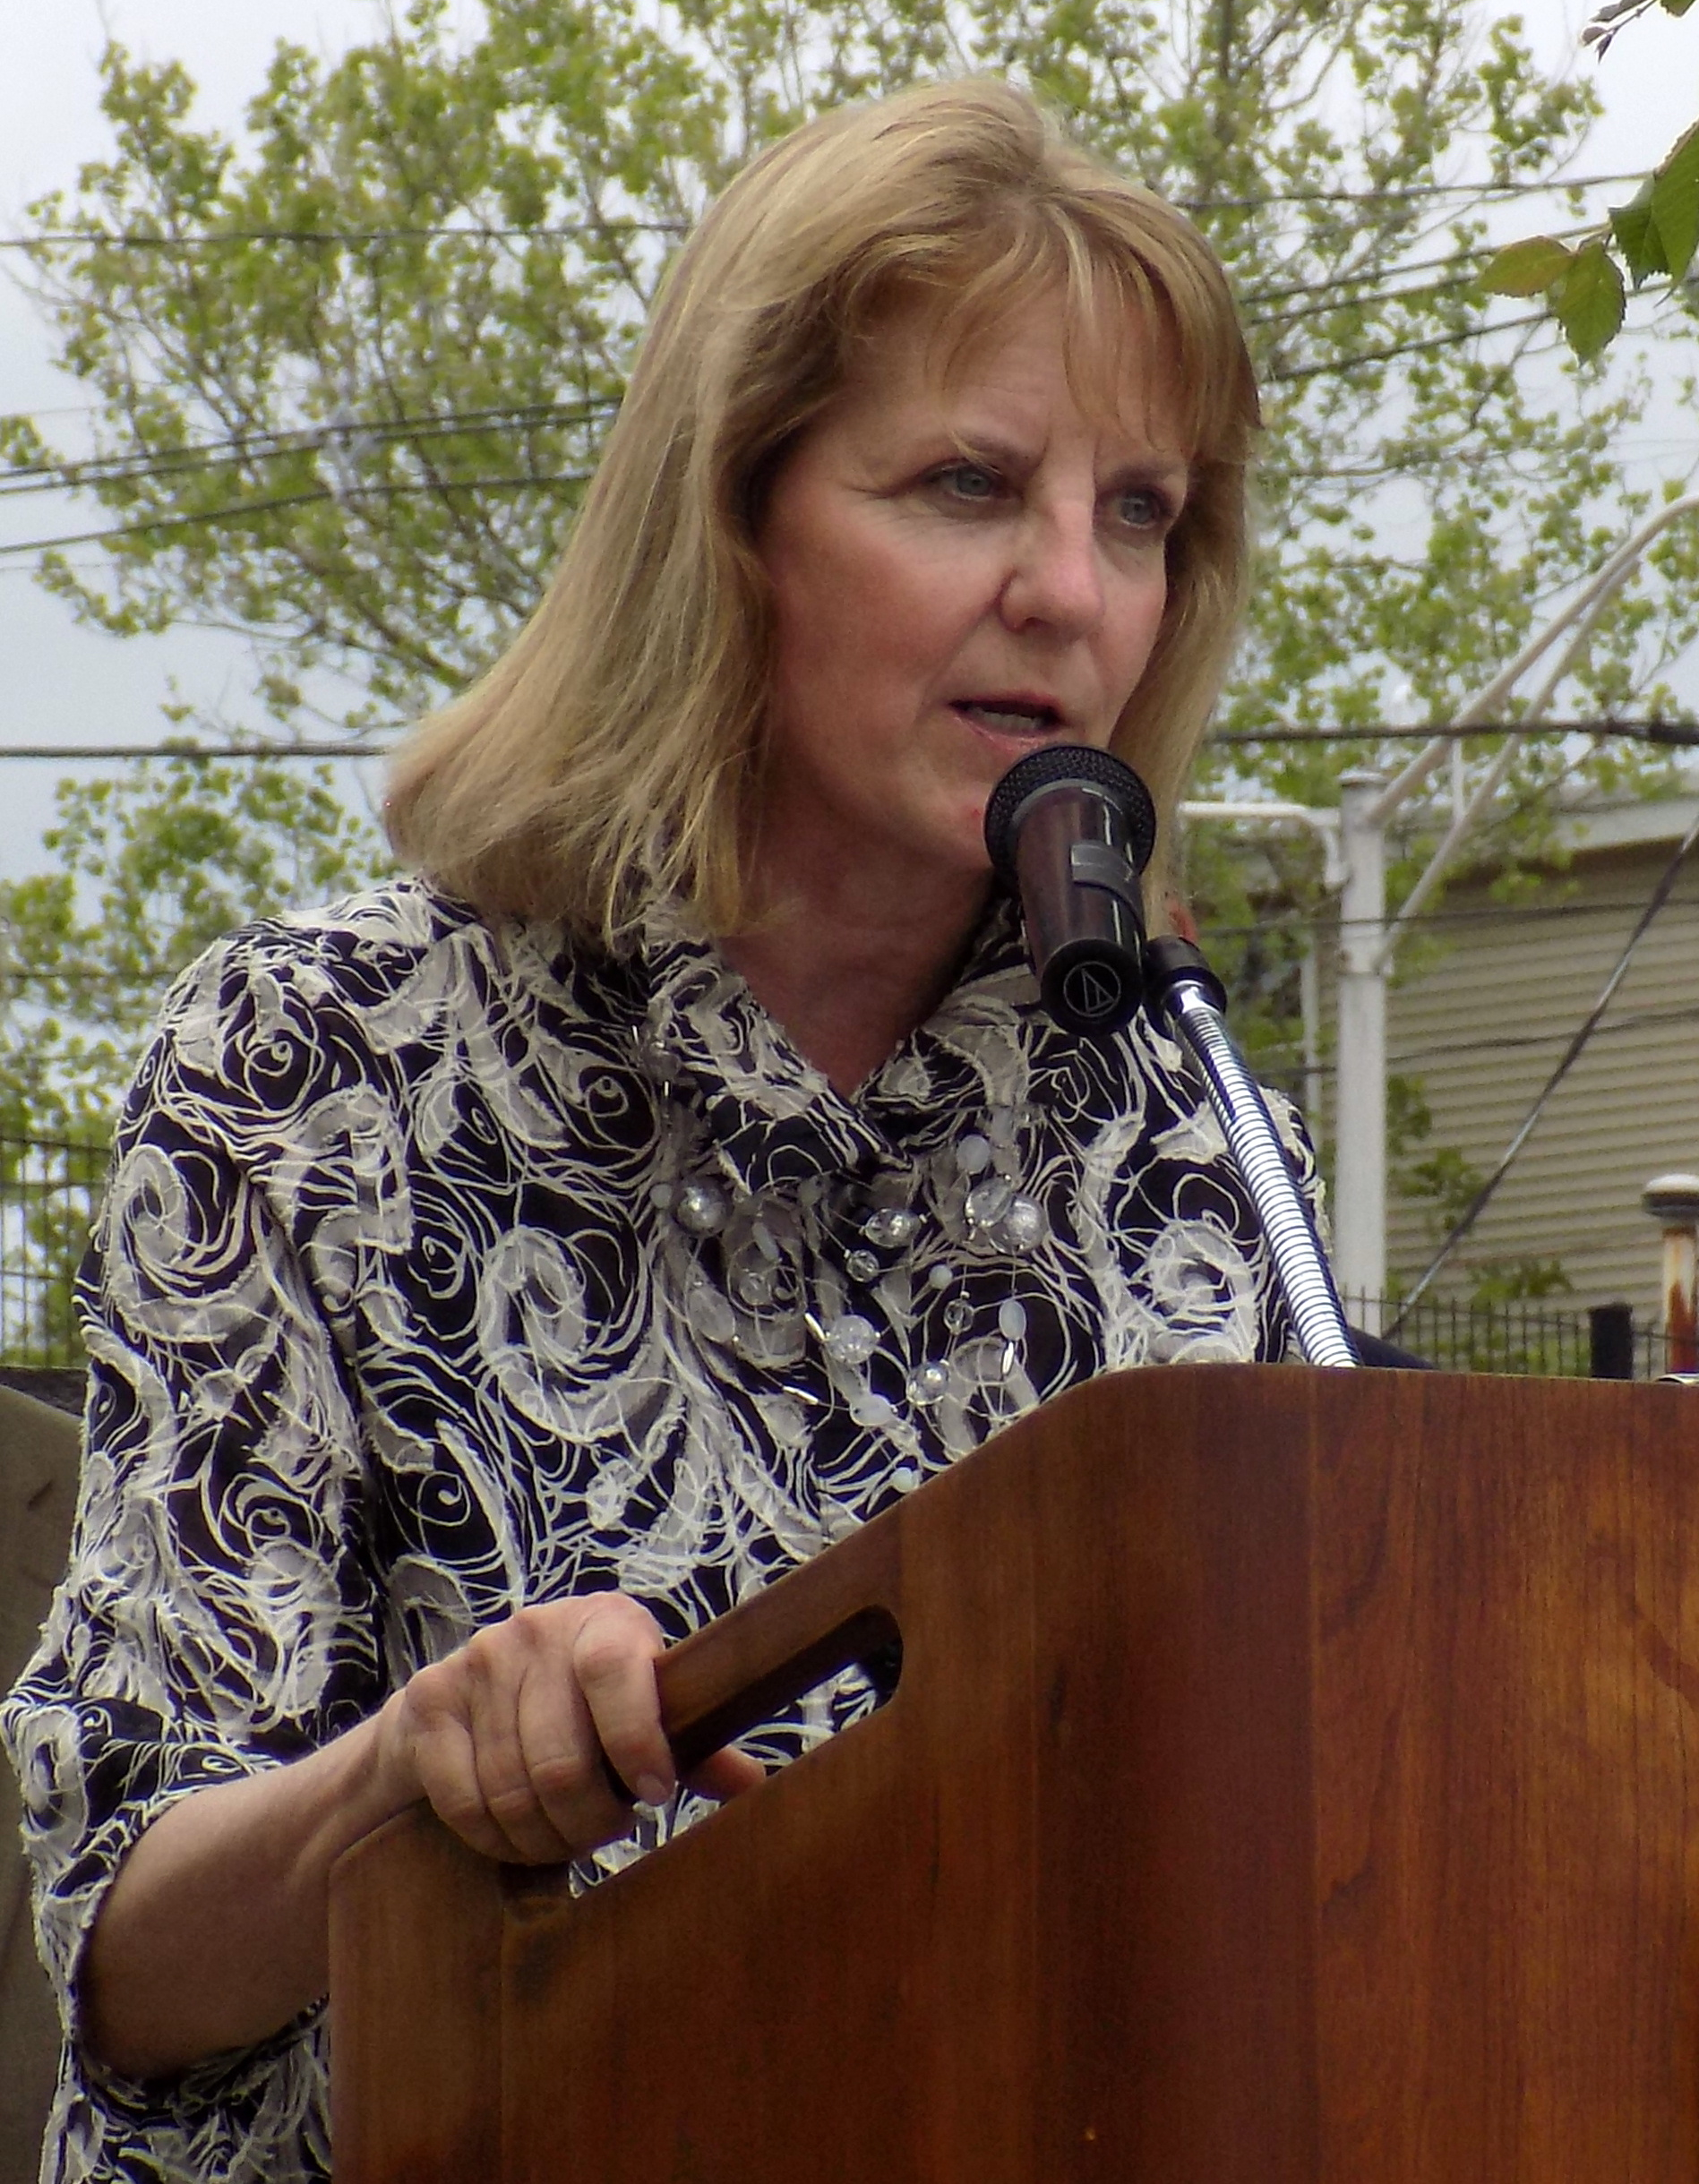 State Sen. Joan Lovely was on hand to help present two state grants to the city totaling $467,616 for Municipal Vulnerability Preparedness at East End Peabody Veterans Memorial Park on June 1.